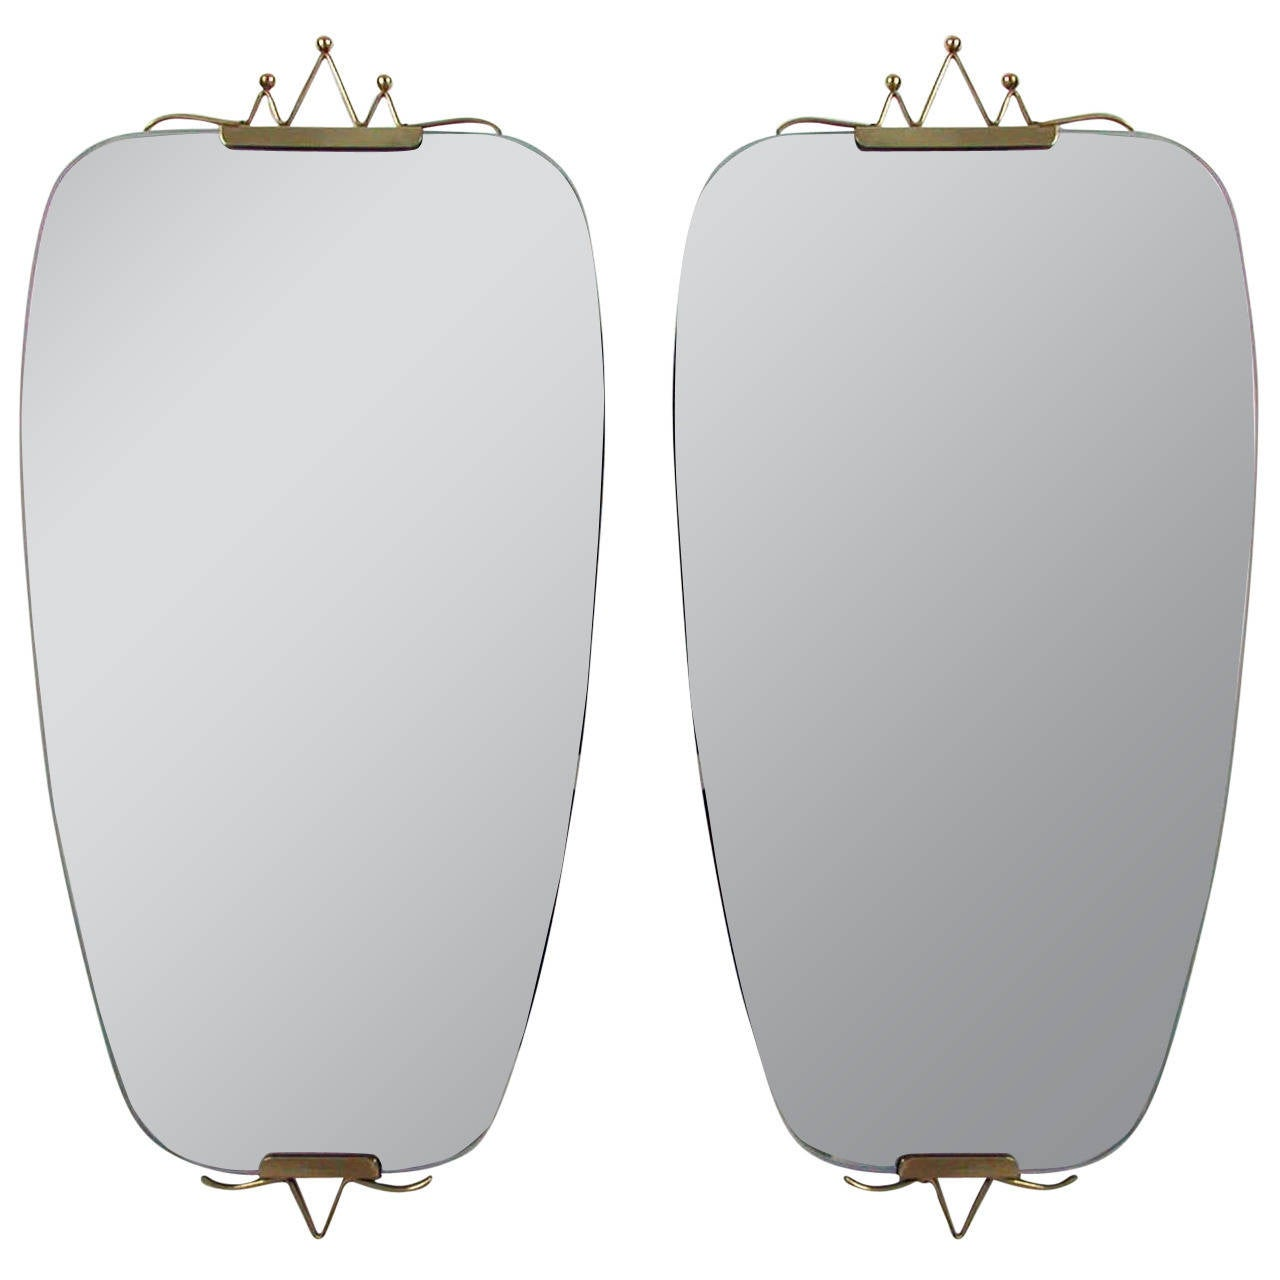 Pair of 1950s Mid-Century Italian Brass Wall Mirrors